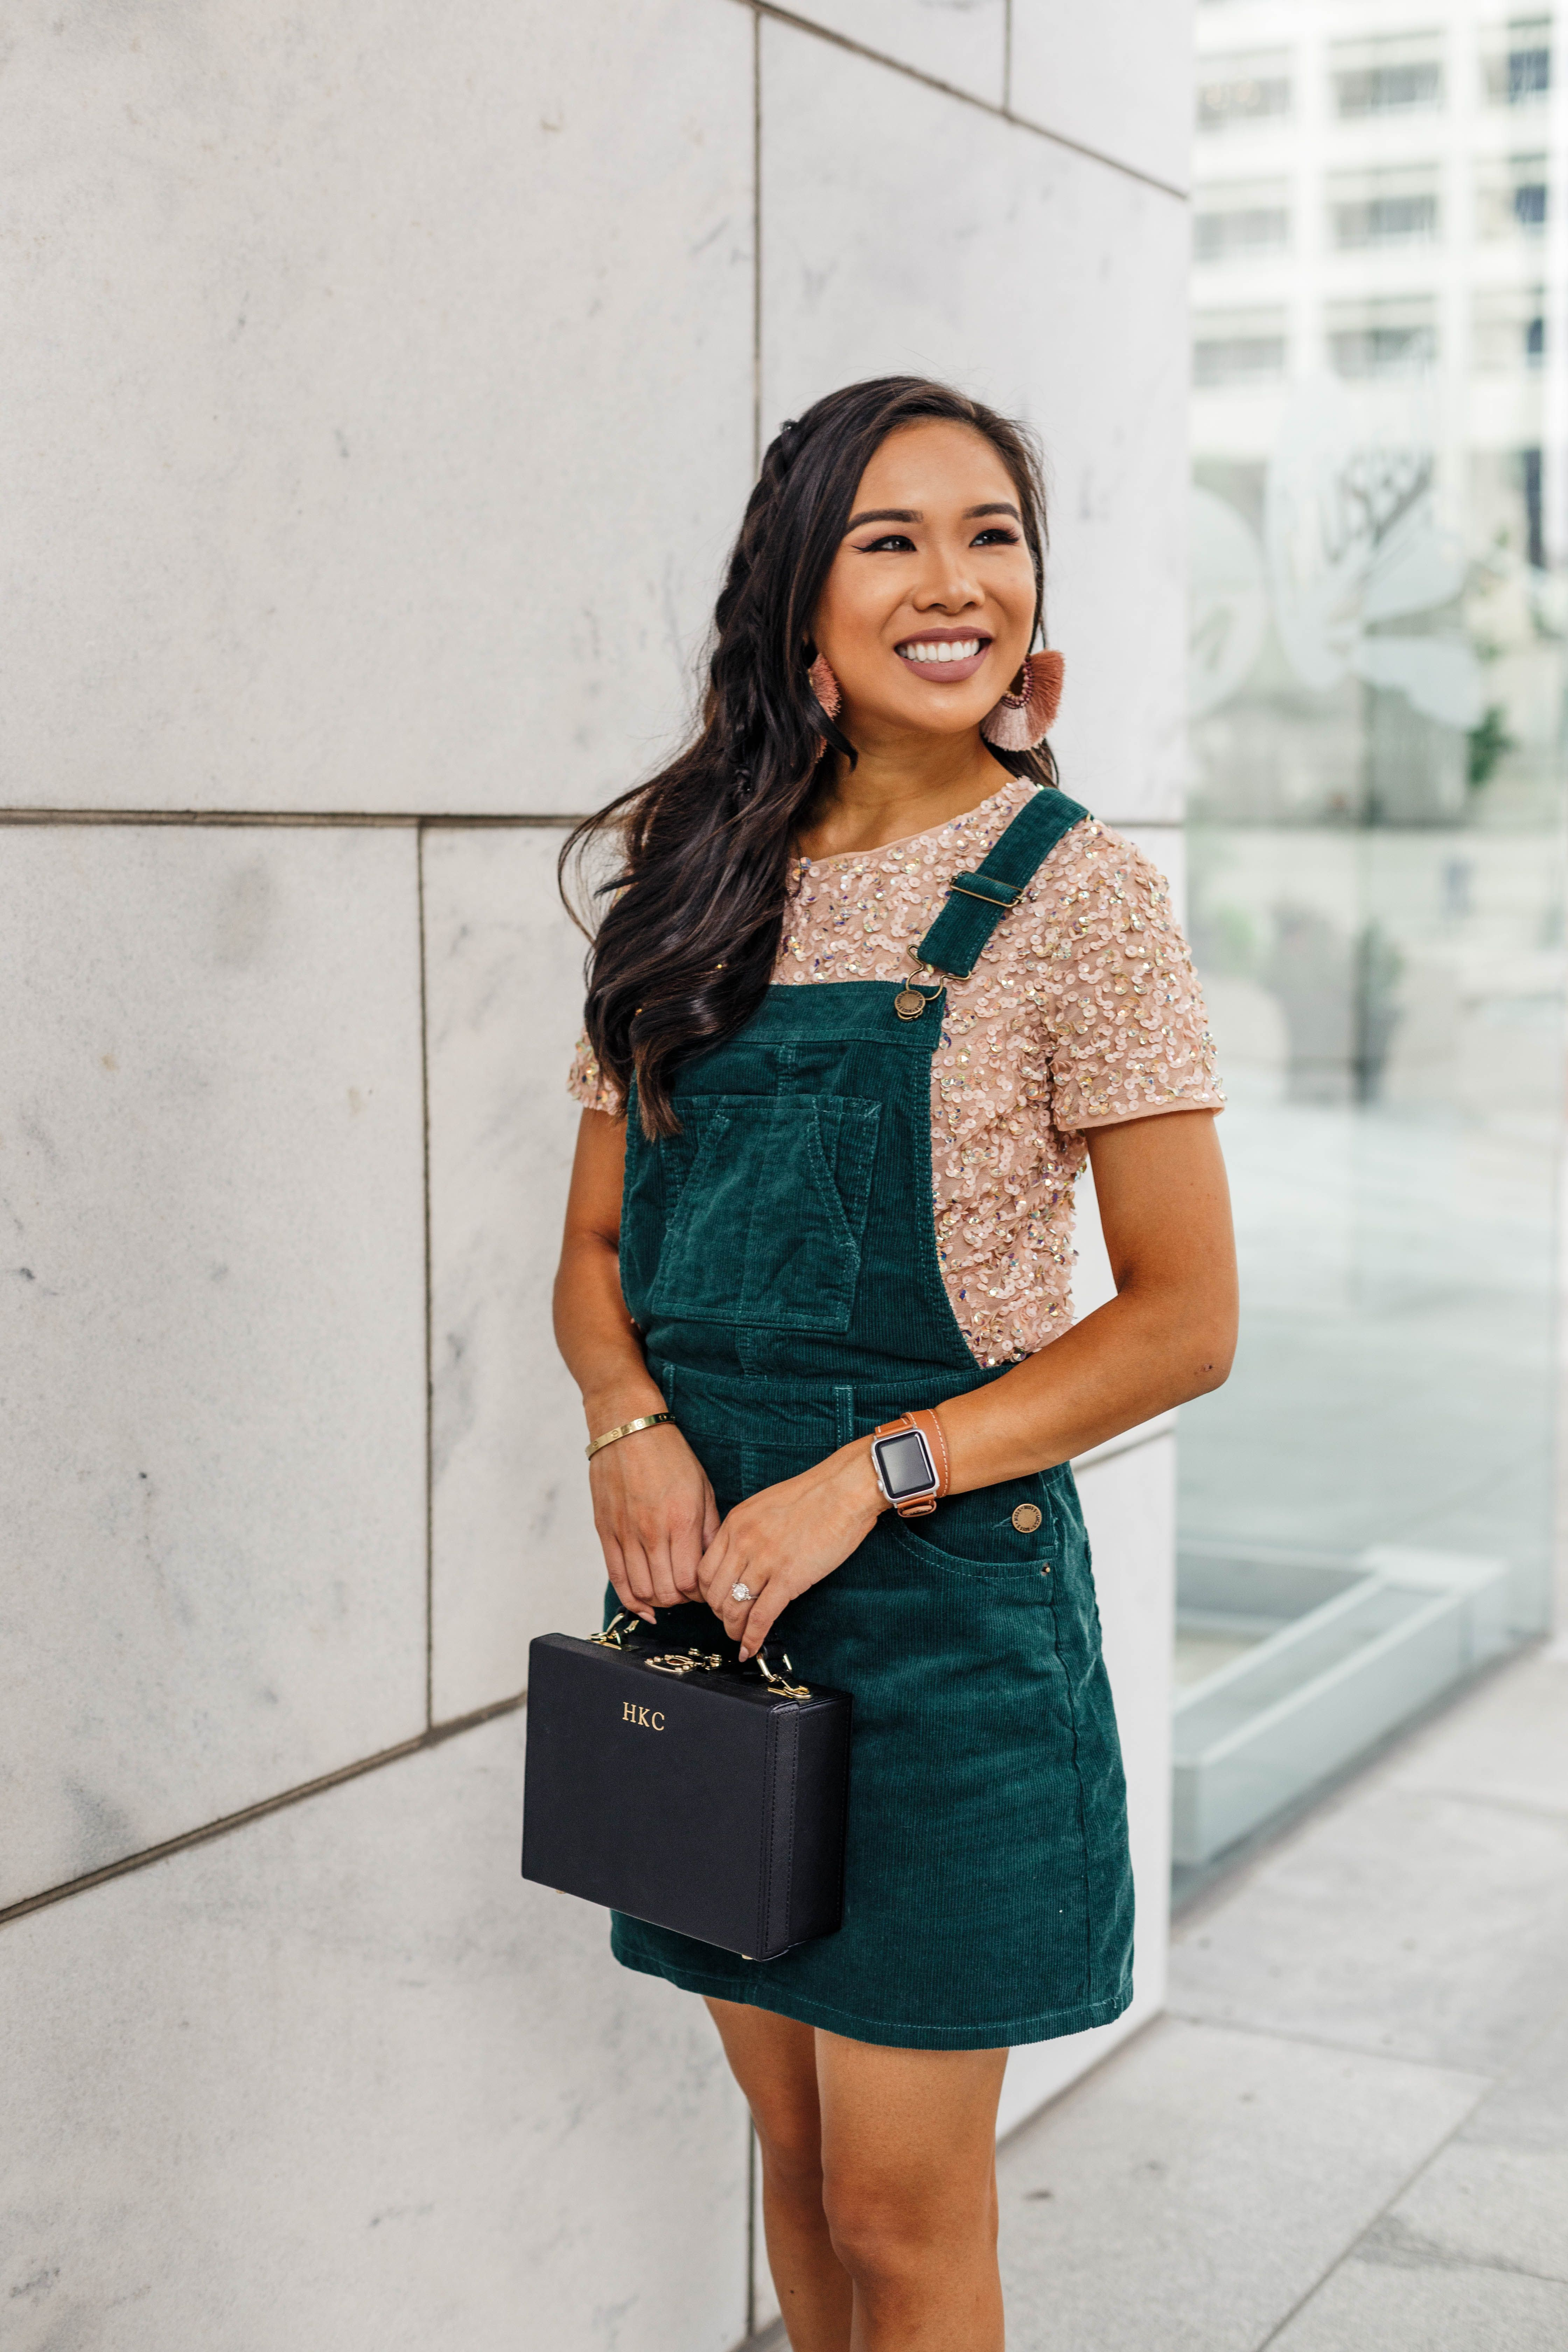 Styling A Corduroy Overall Dress For A Night Out Color Chic Corduroy Overall Dress Spring Outfits Casual Fall Dress Outfit [ 6720 x 4480 Pixel ]